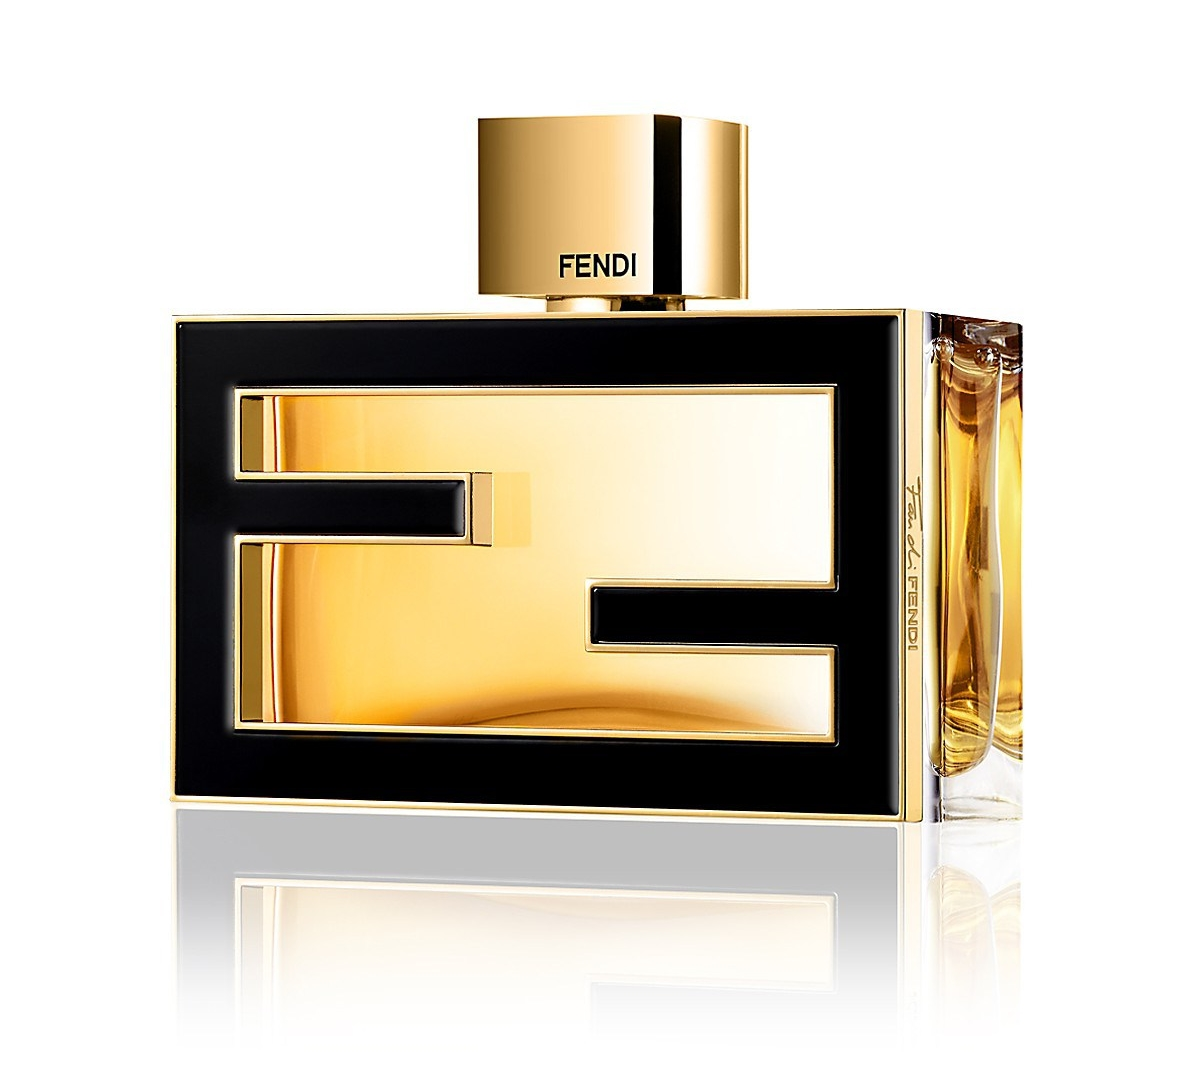 Fan di Fendi Extreme by Fendi Flacon